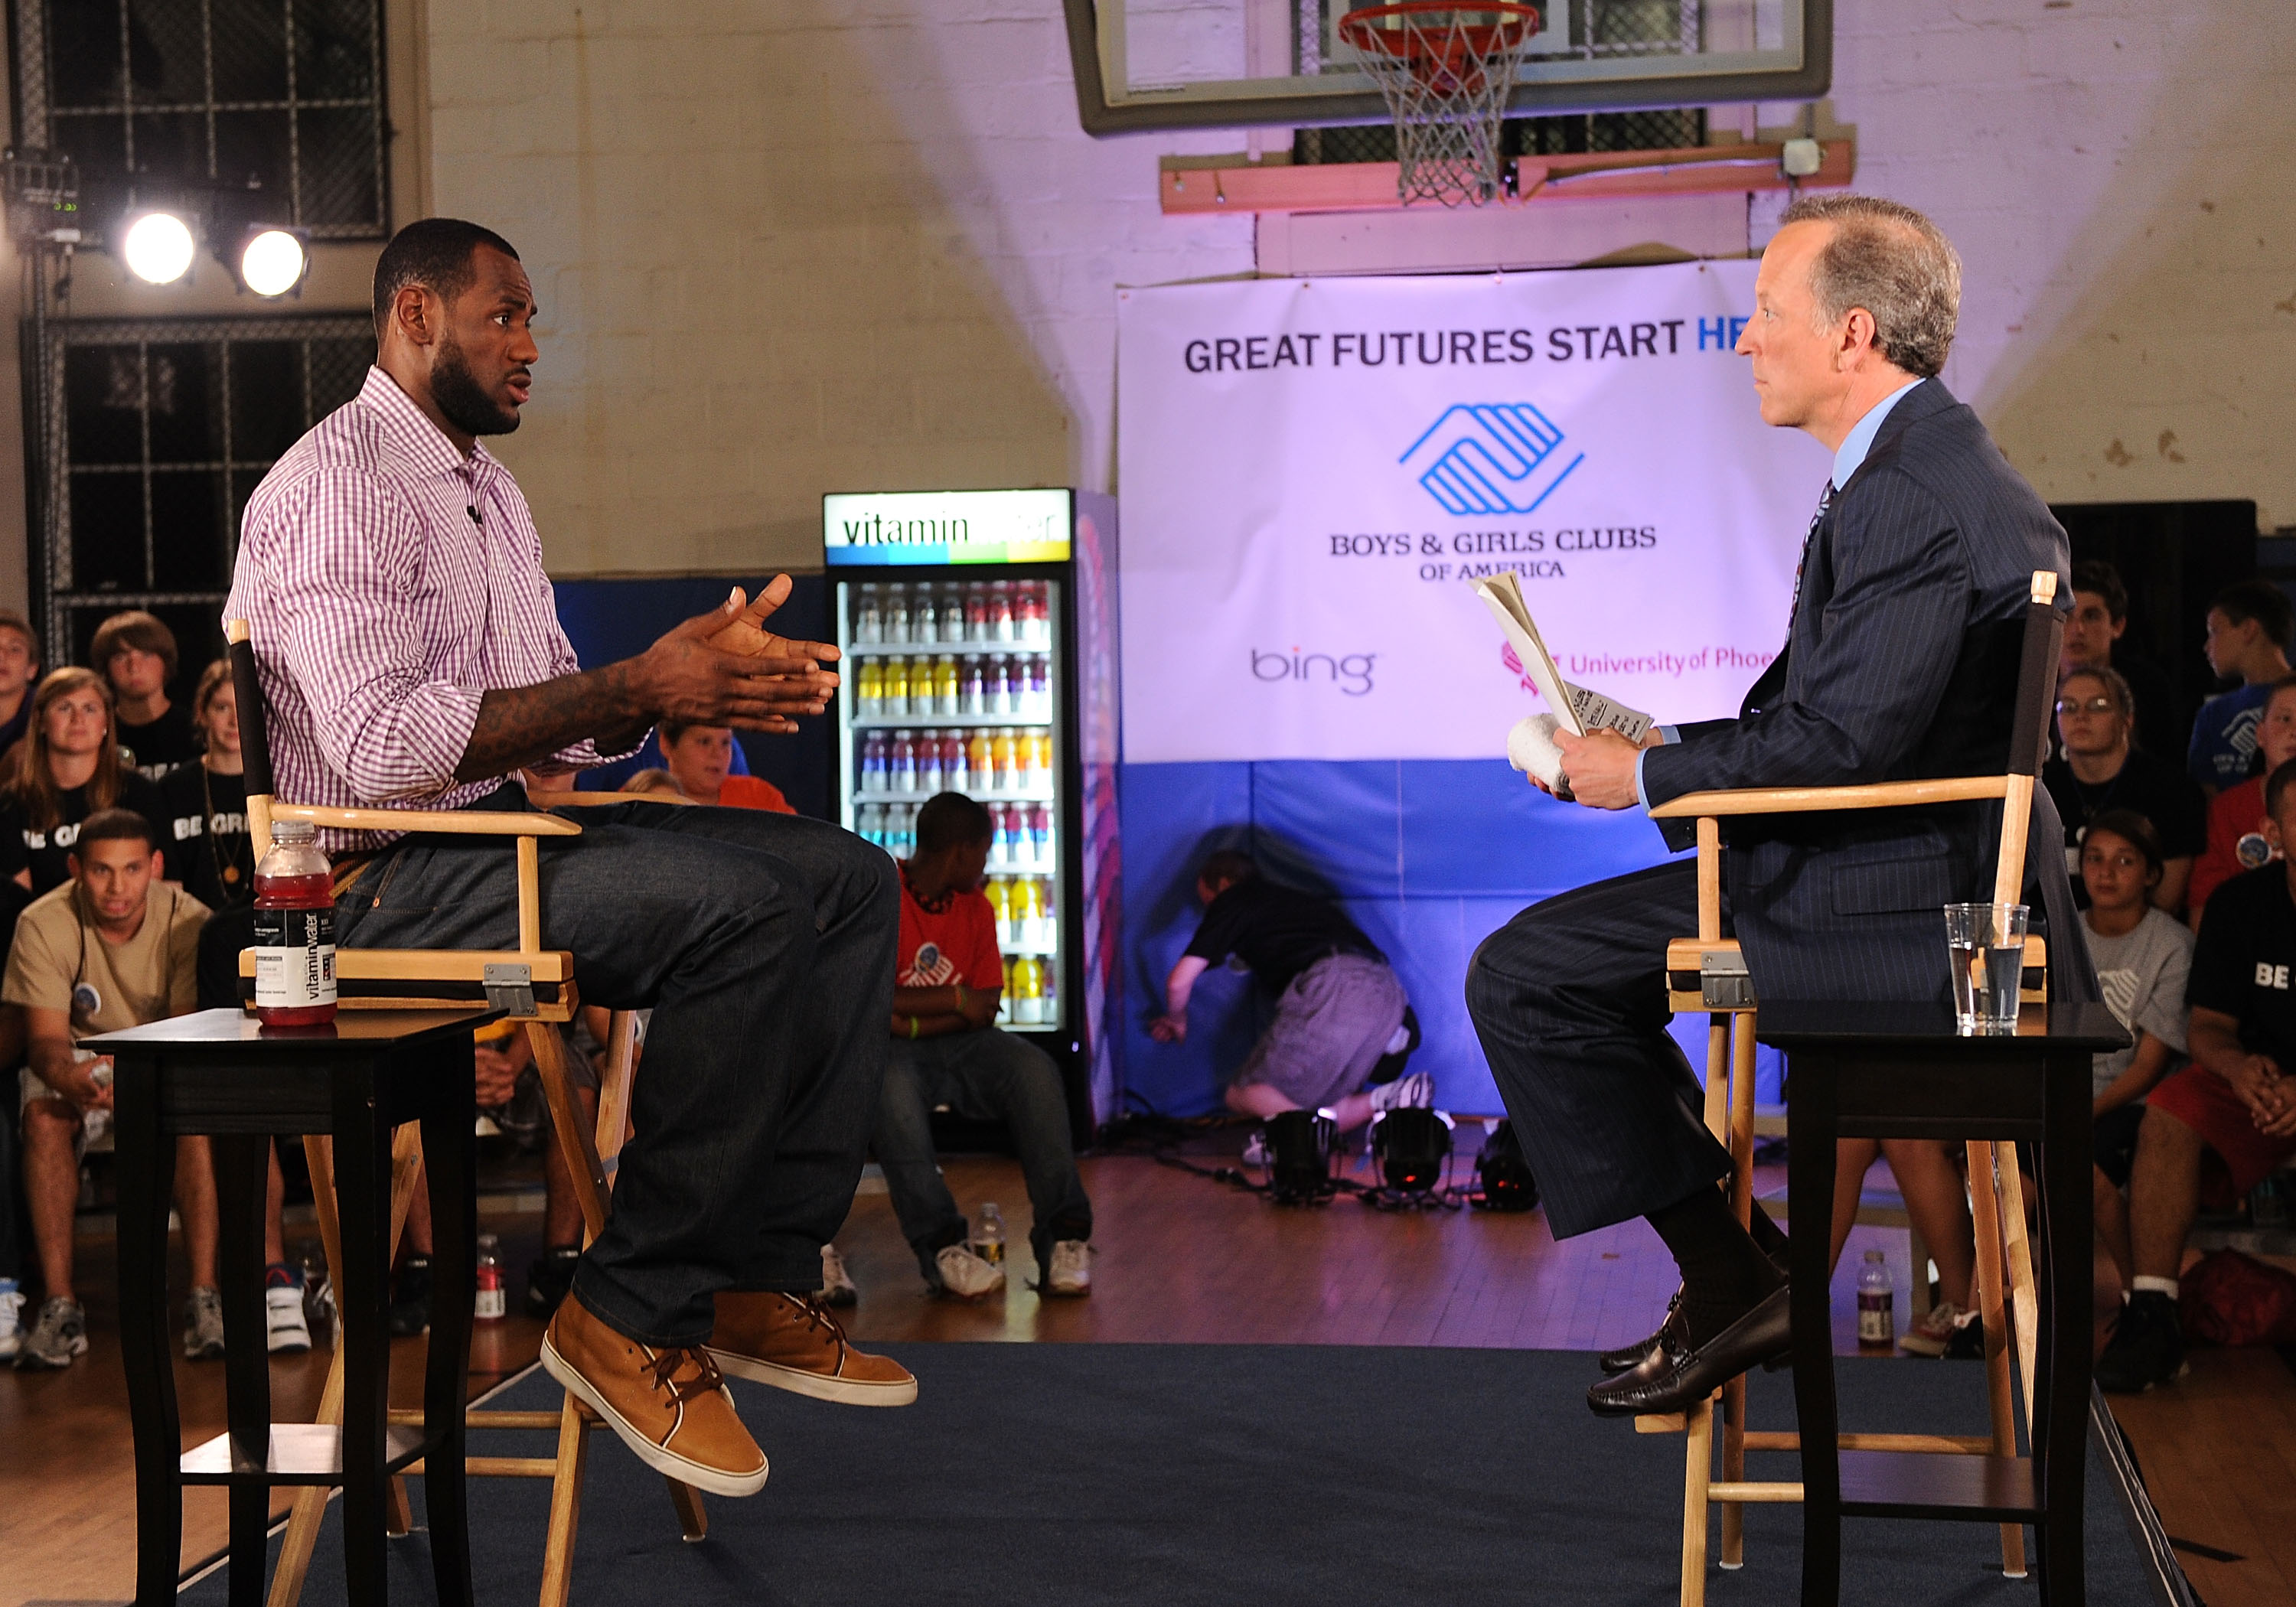 GREENWICH, CT - JULY 08:  LeBron James and ESPN's Jim Gray speak at the LeBron James announcement of his future NBA plans at the  Boys & Girls Club of America on July 8, 2010 in Greenwich, Connecticut.  (Photo by Larry Busacca/Getty Images for Estabrook G